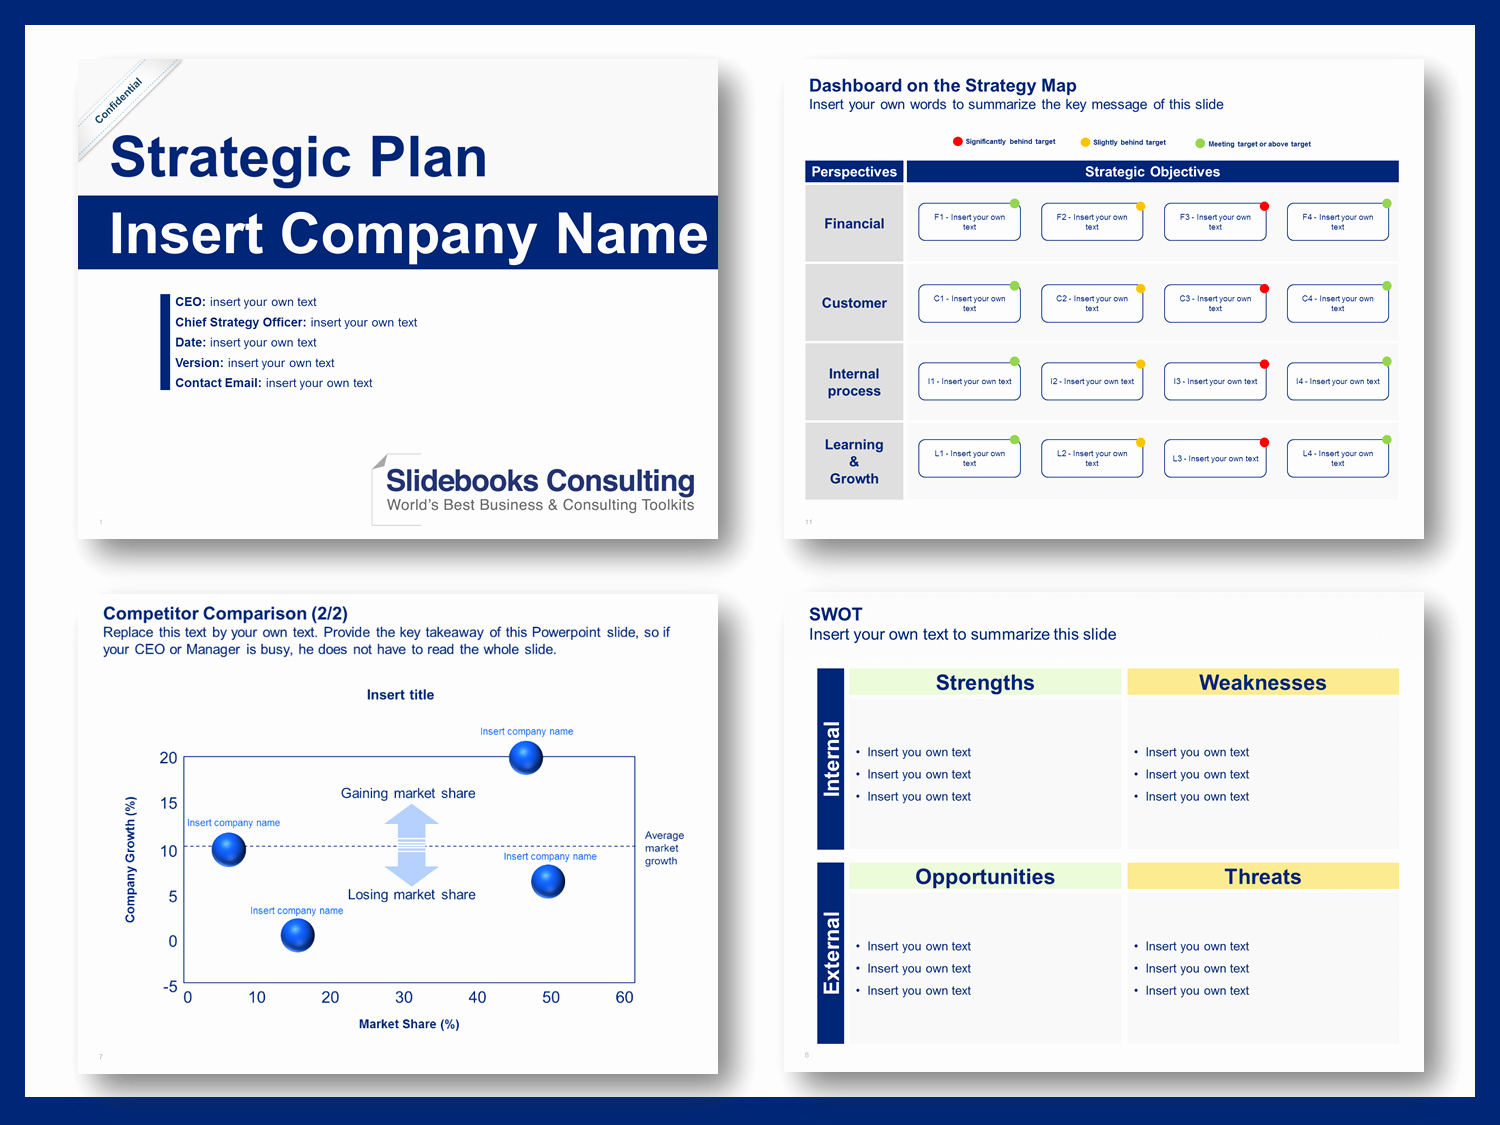 Strategic Plan Template Ppt Awesome Download A Simple Strategic Plan Template